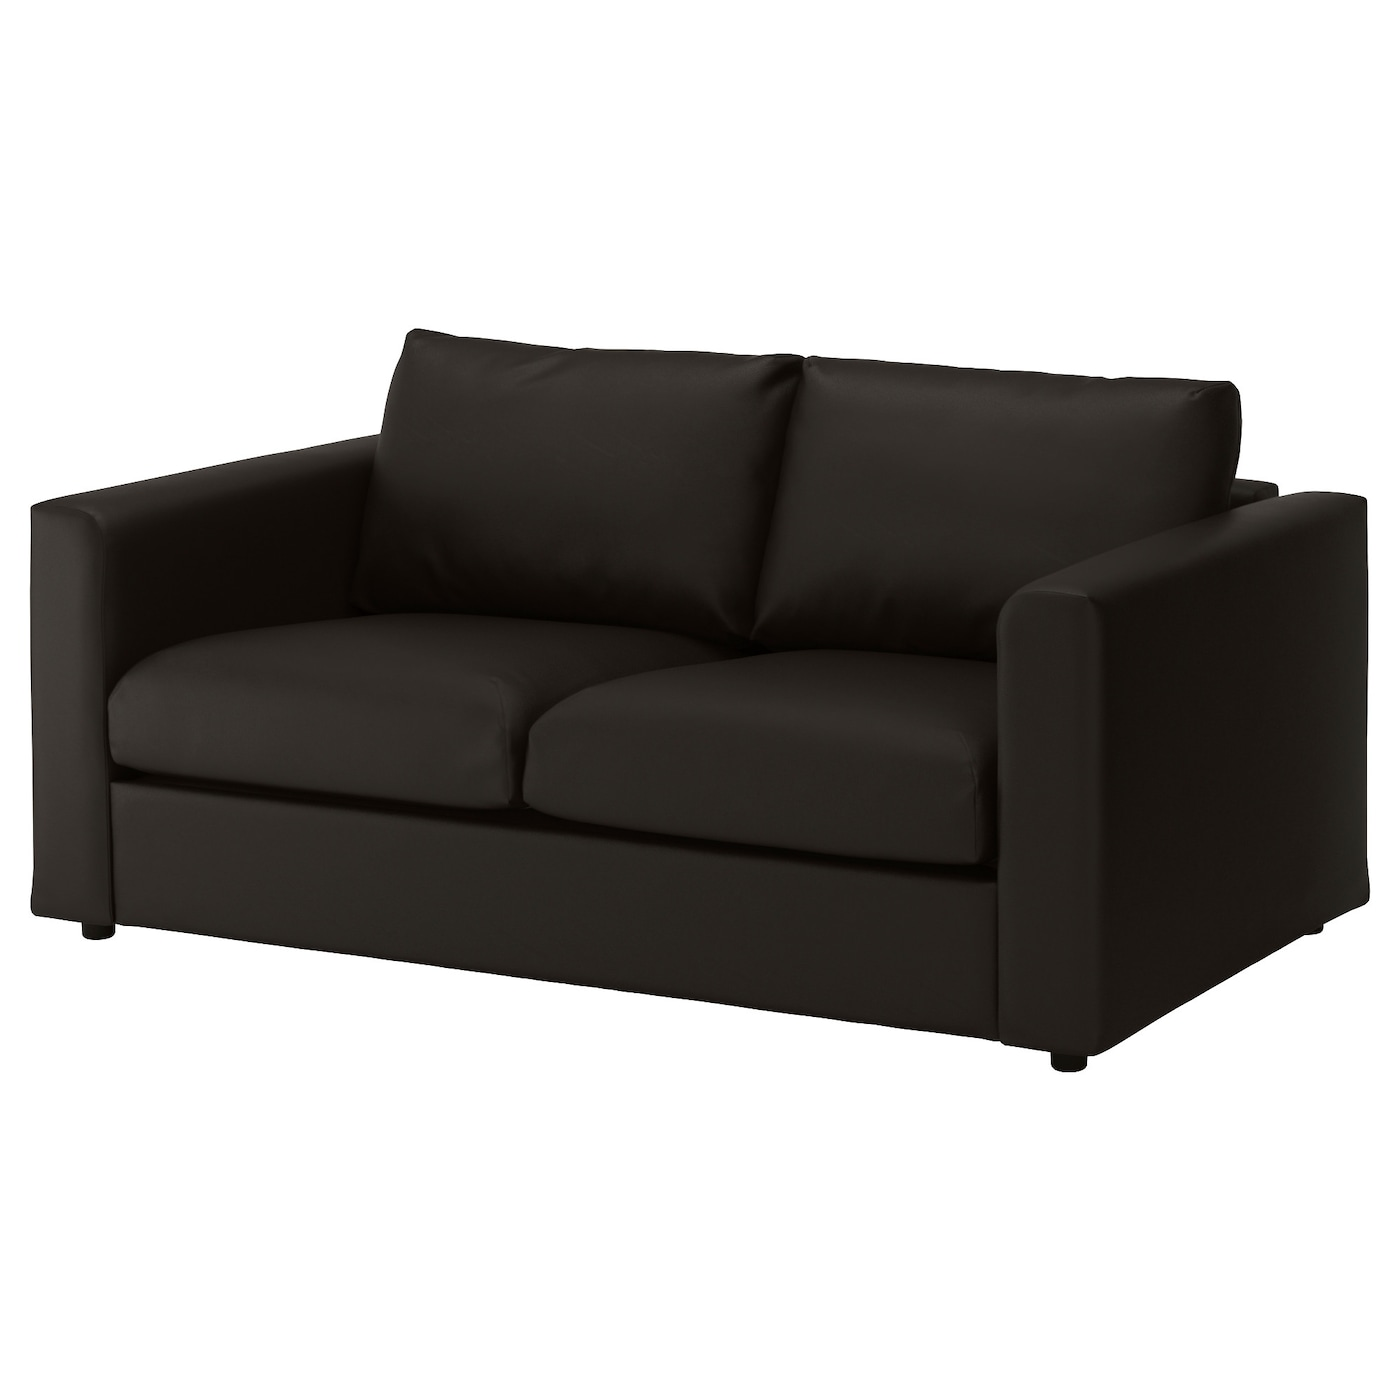 IKEA VIMLE 2-seat sofa The cover is easy to keep clean as it can be wiped clean with a damp cloth.